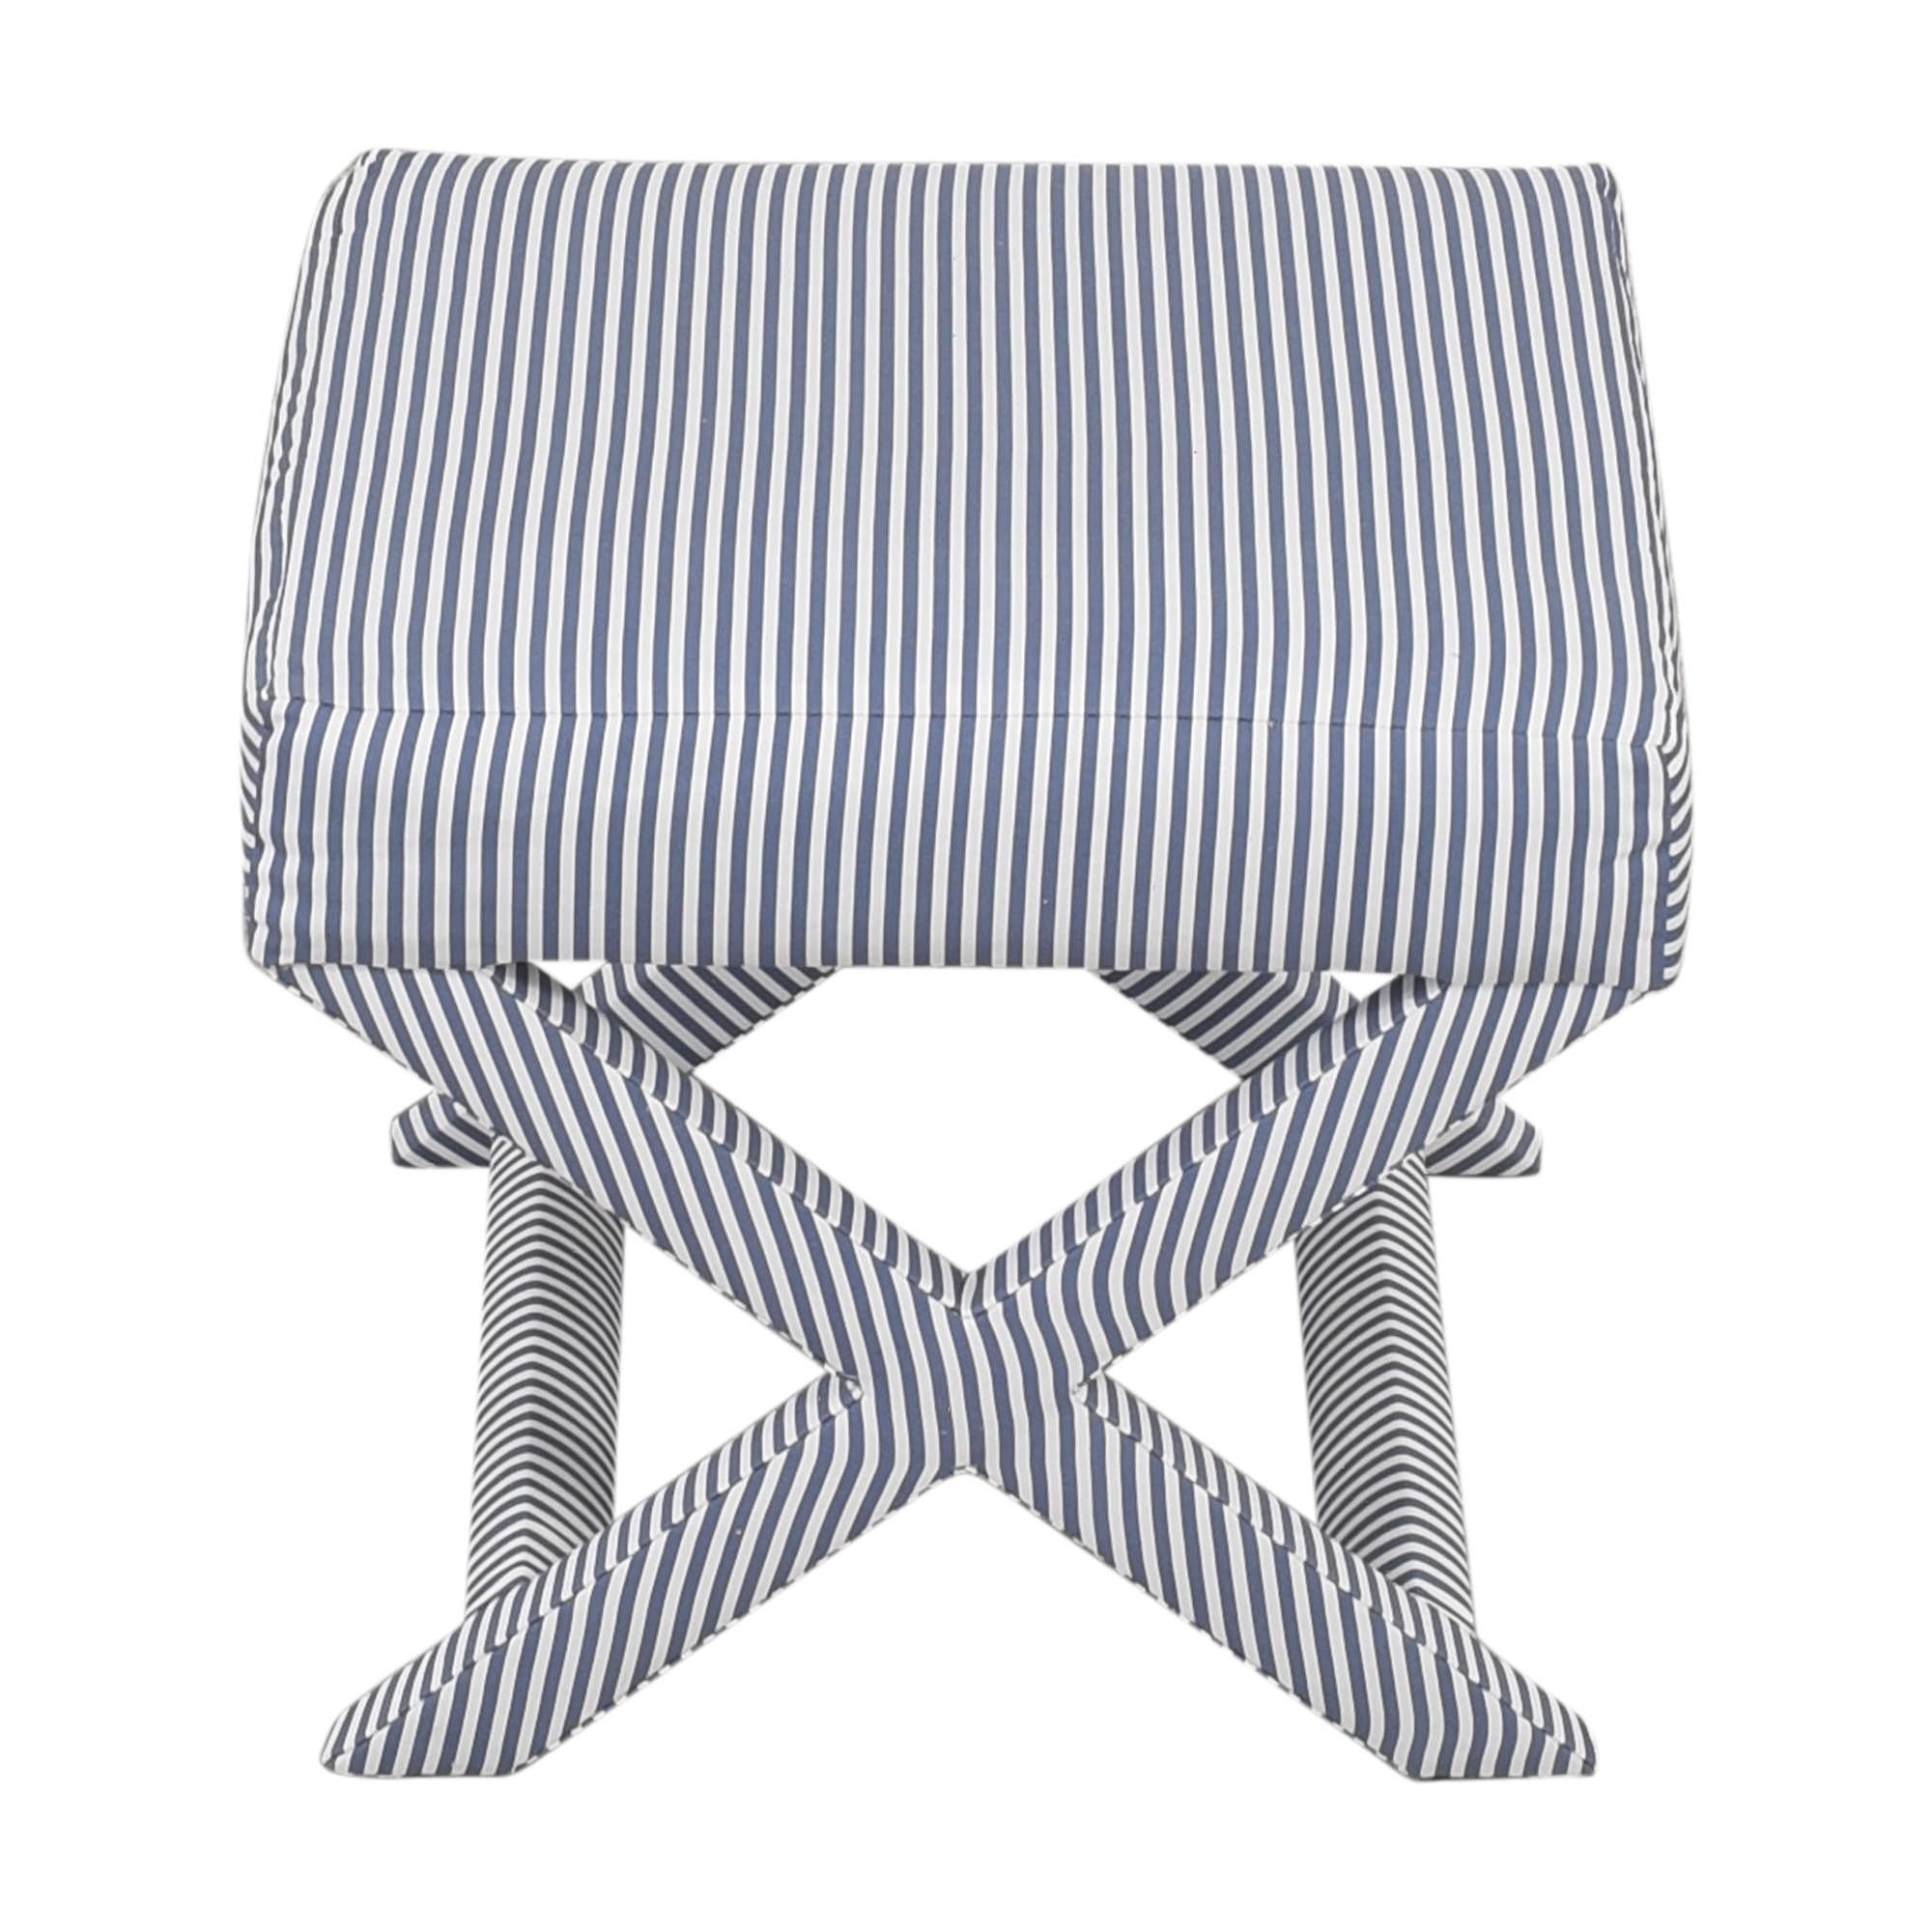 The Inside The inside Ticking Stripe X Bench Ottomans